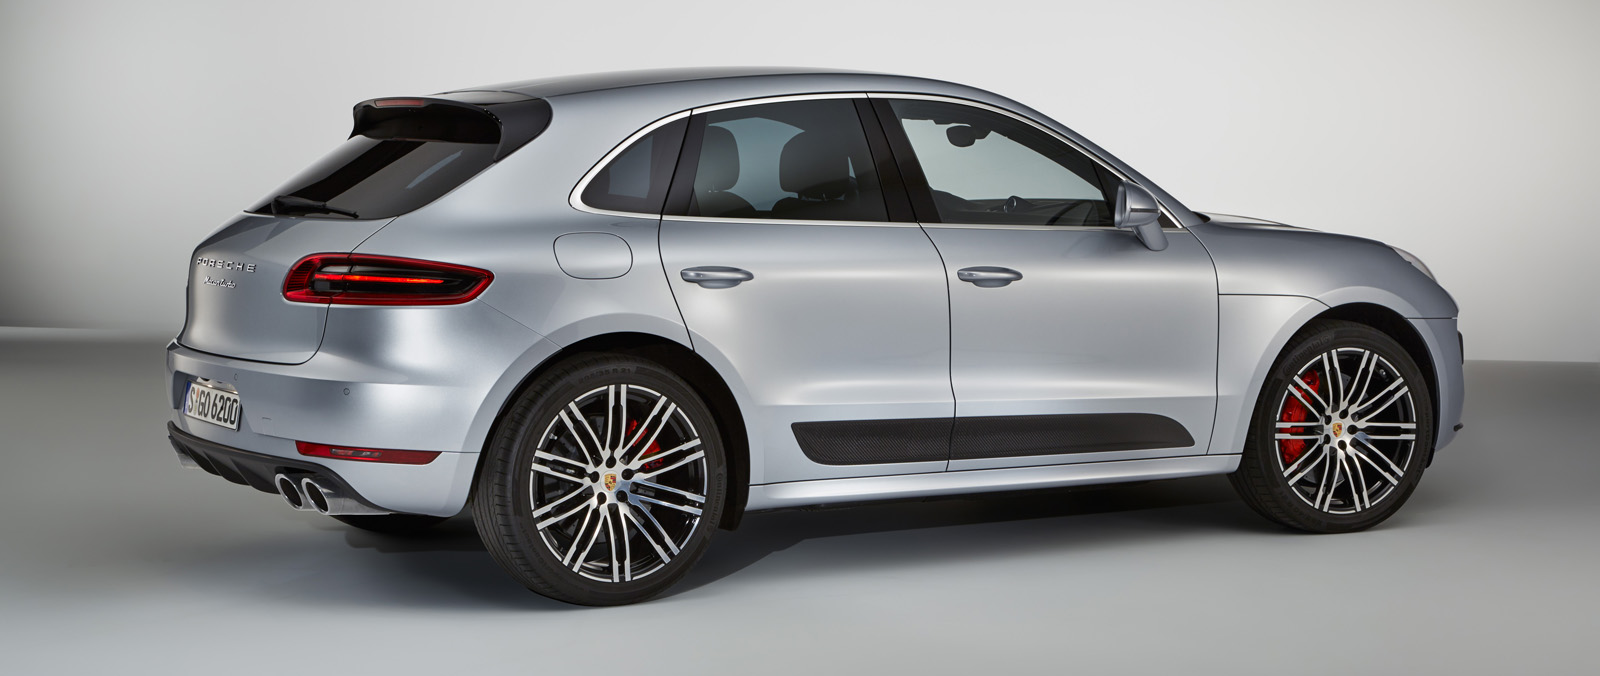 Porsche Macan Turbo met Performance Package